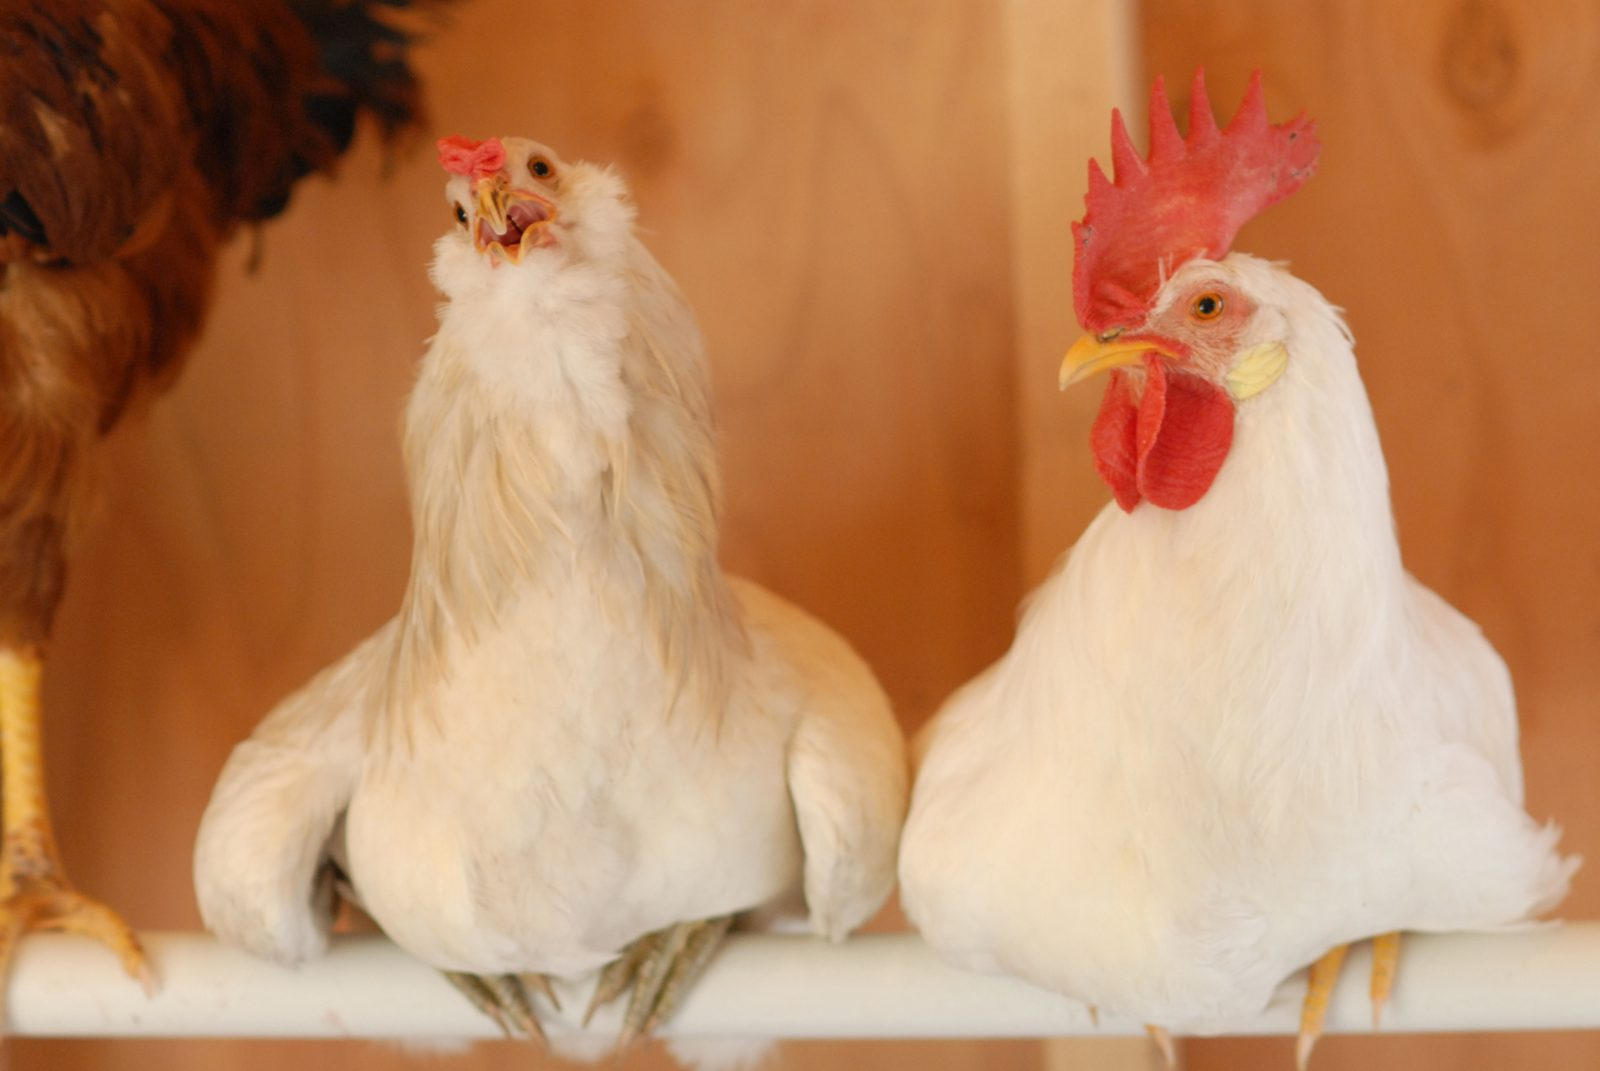 Roosters resting in their coop